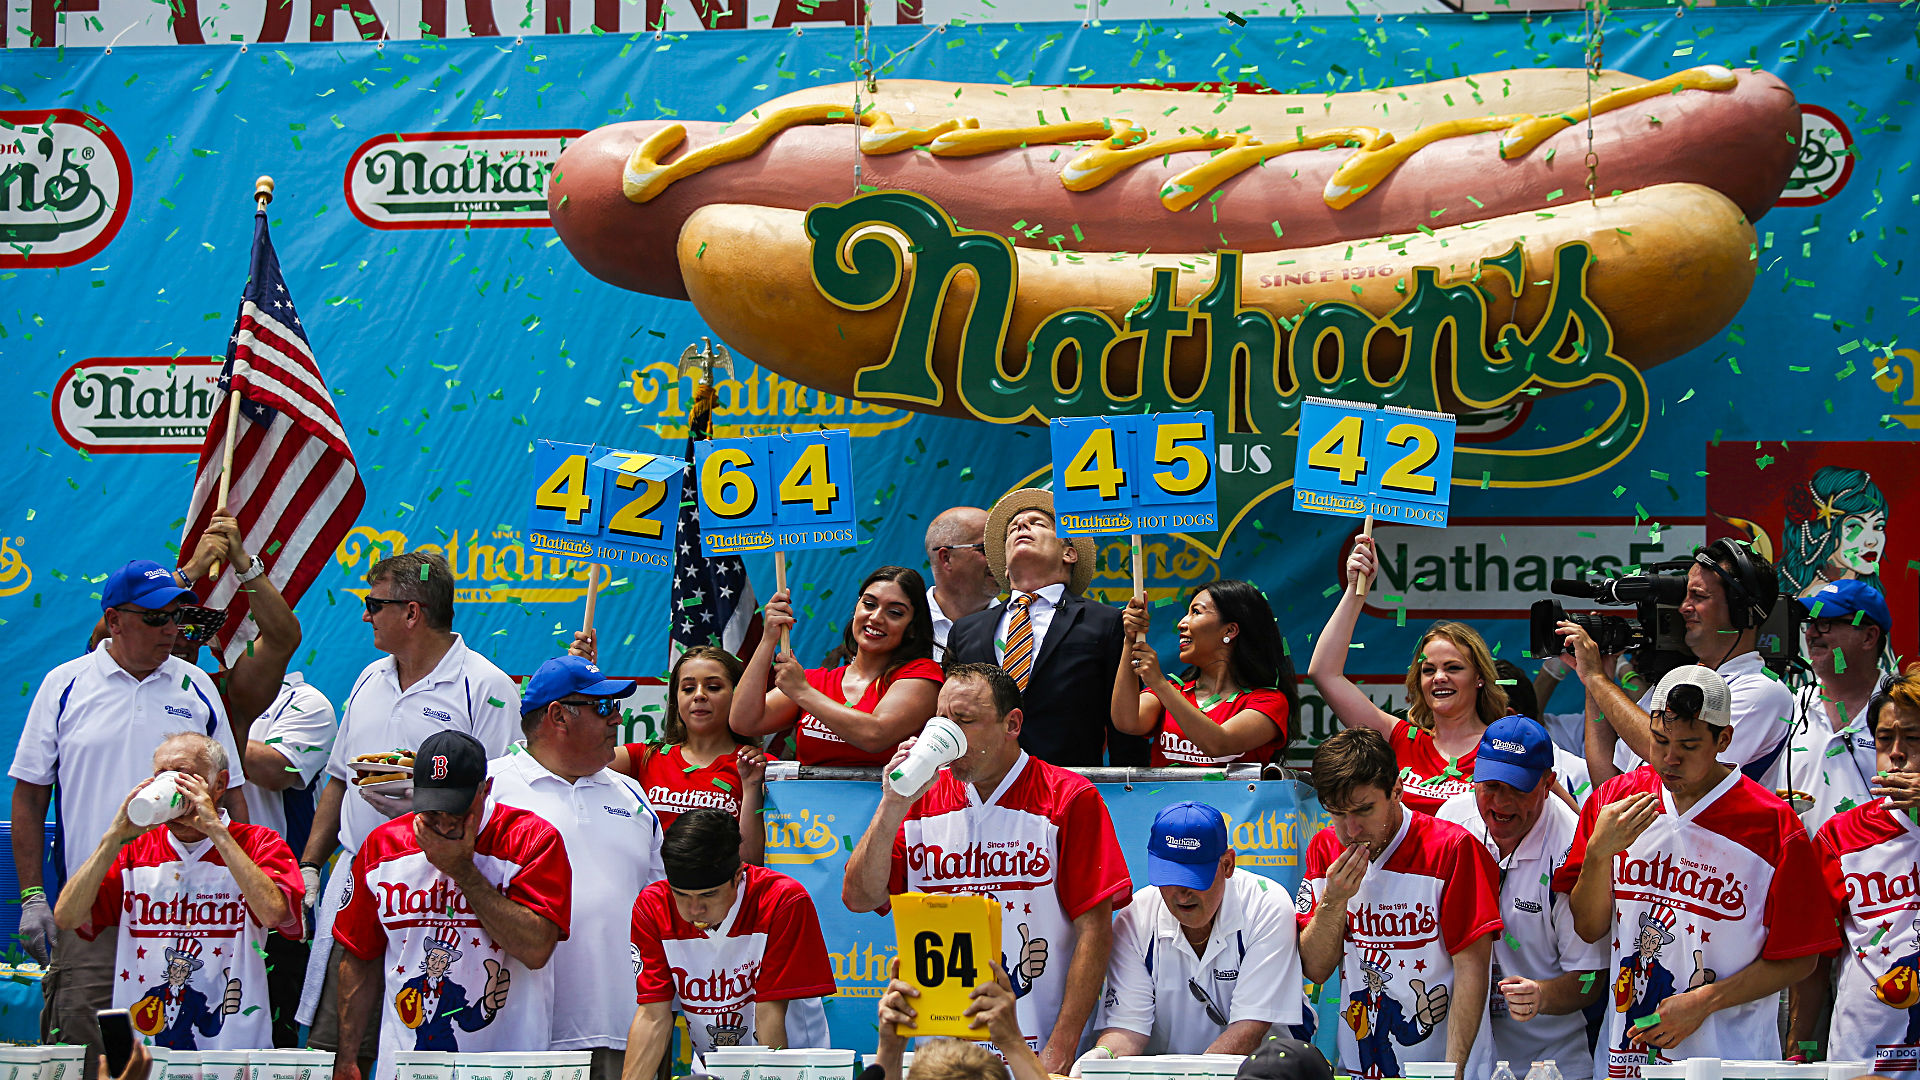 Nathan's Hot Dog Eating Contest prize money: How much will the winner make in 2020? 1